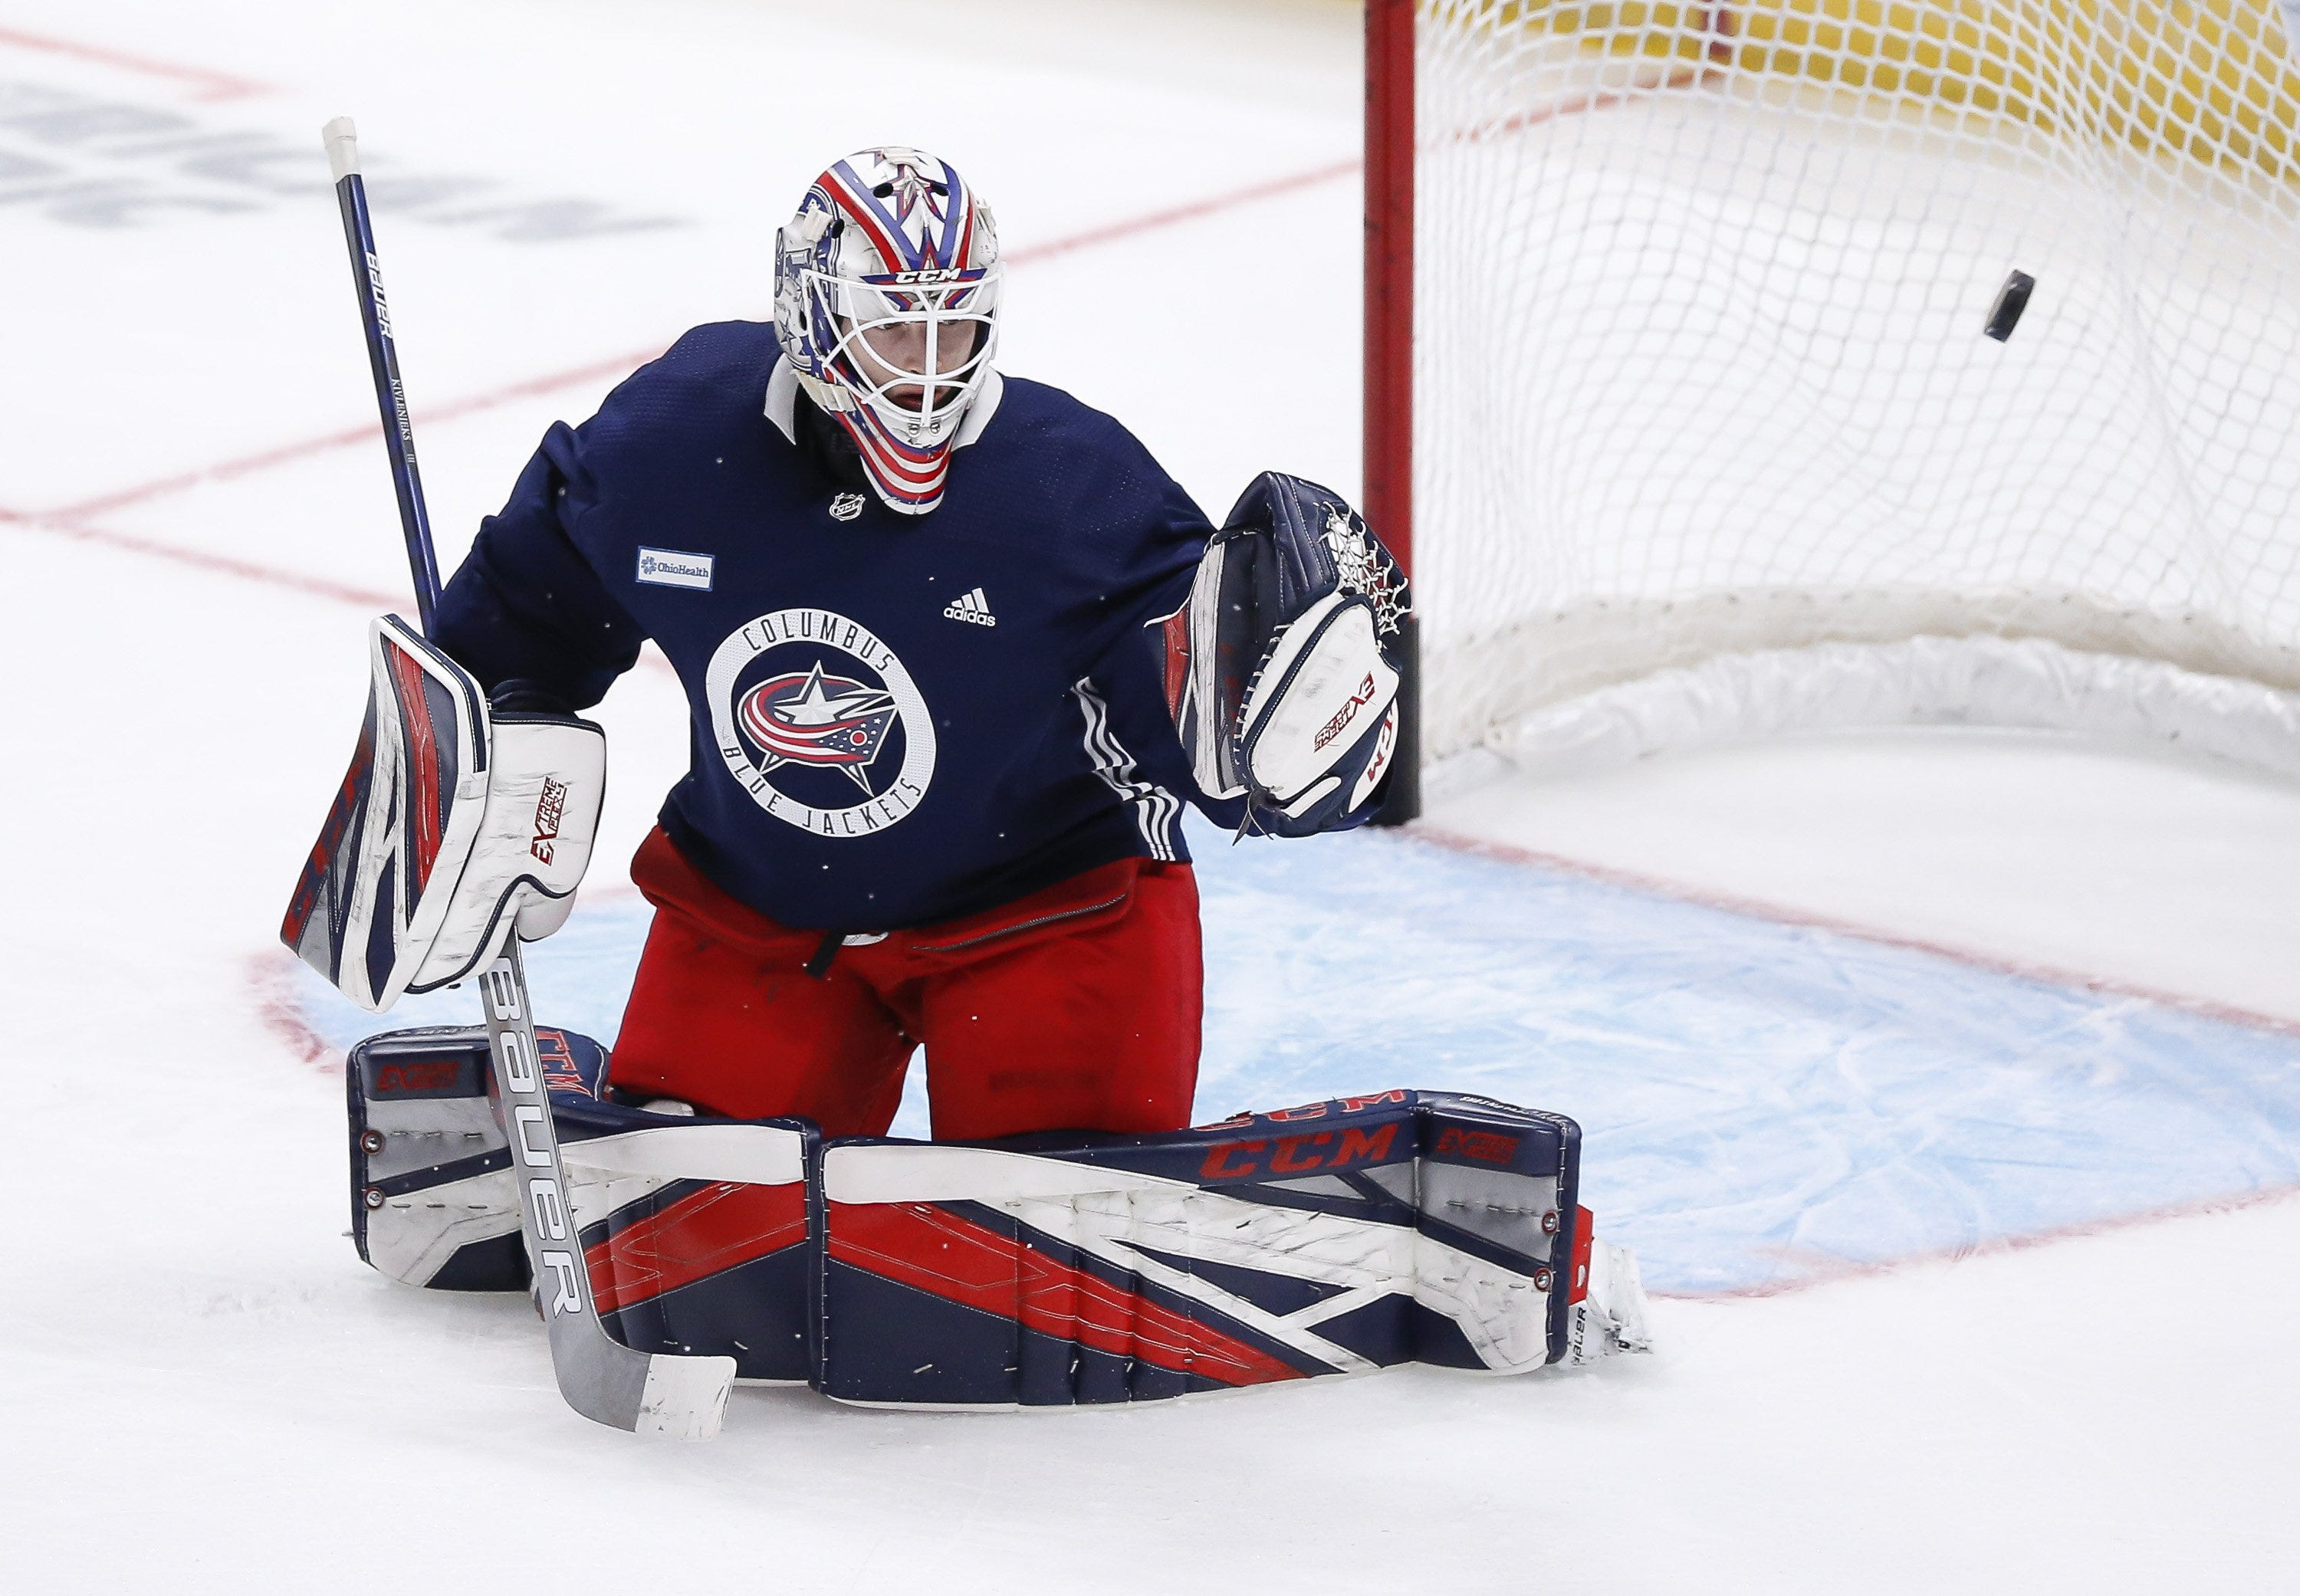 Columbus Blue Jackets goaltender Matiss Kivlenieks (80) deflects a shot during the first day of NHL training camp at Nationwide Arena in Columbus on Monday, Jan. 4, 2021.